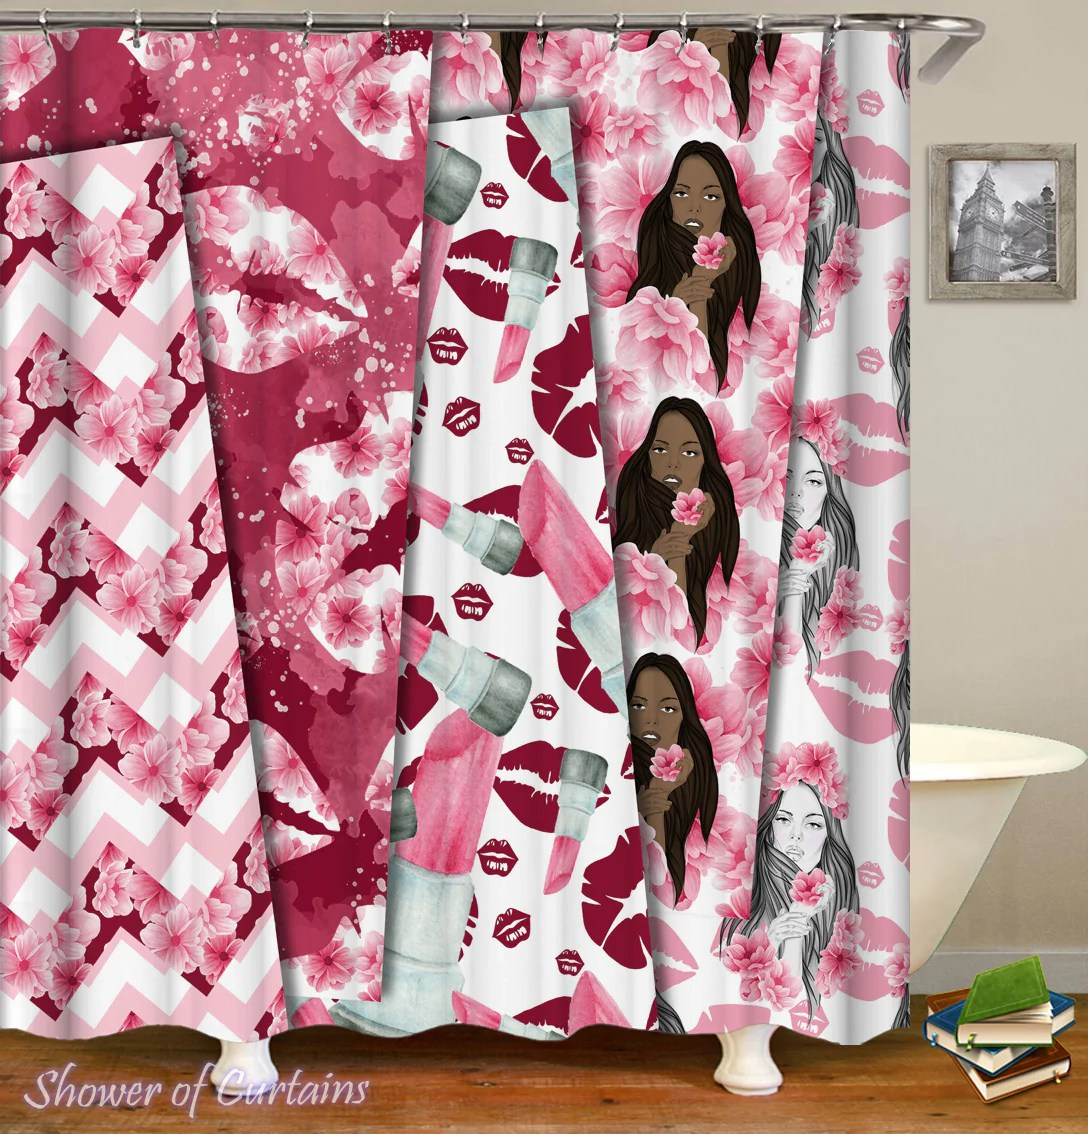 Cute Girly Shower Curtains Pinkish Glow